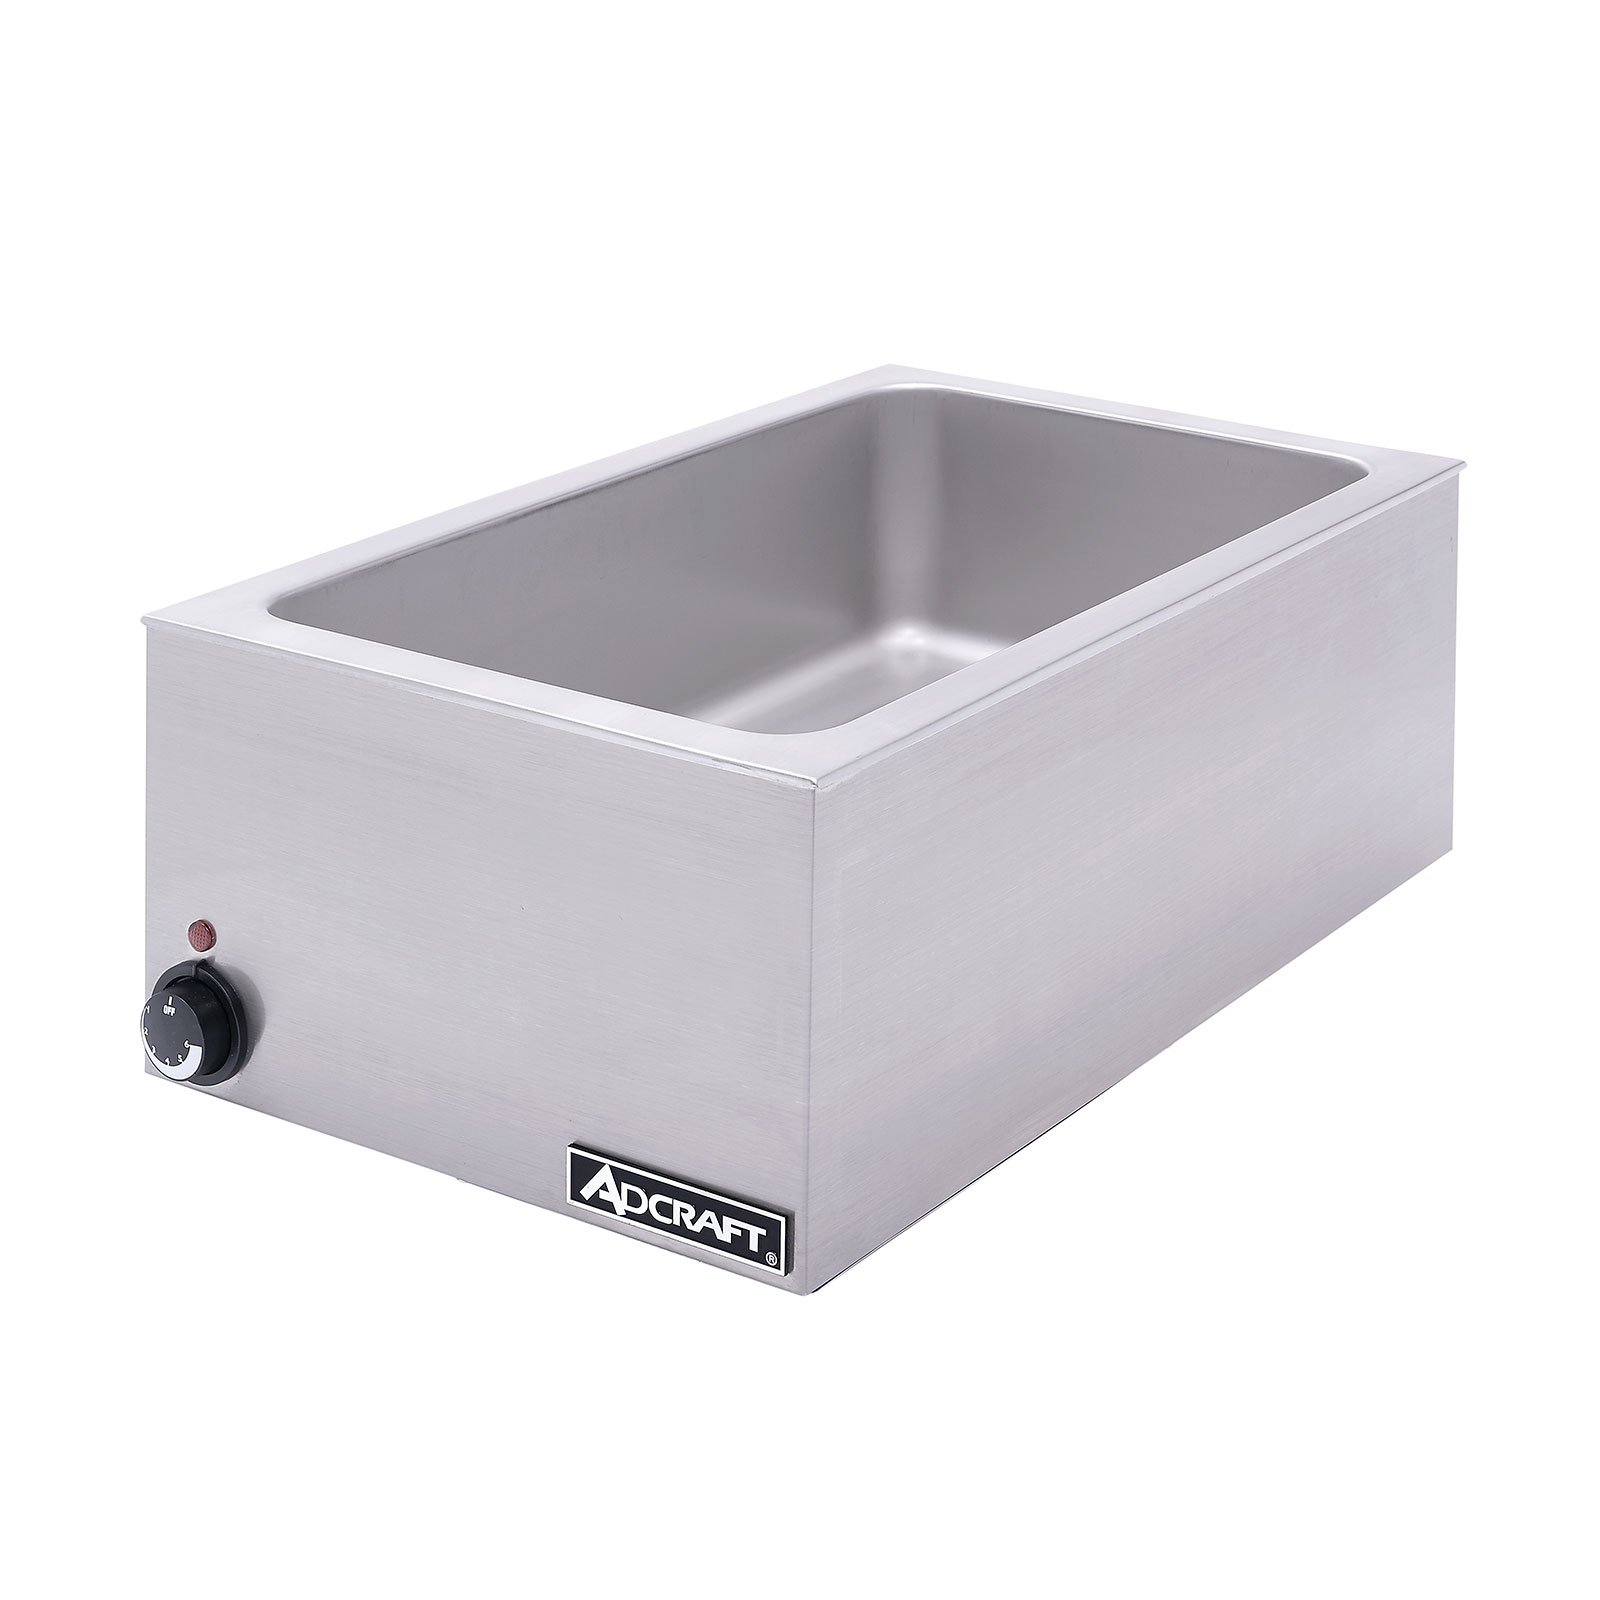 Admiral Craft FW-1500W/C food pan warmer, countertop